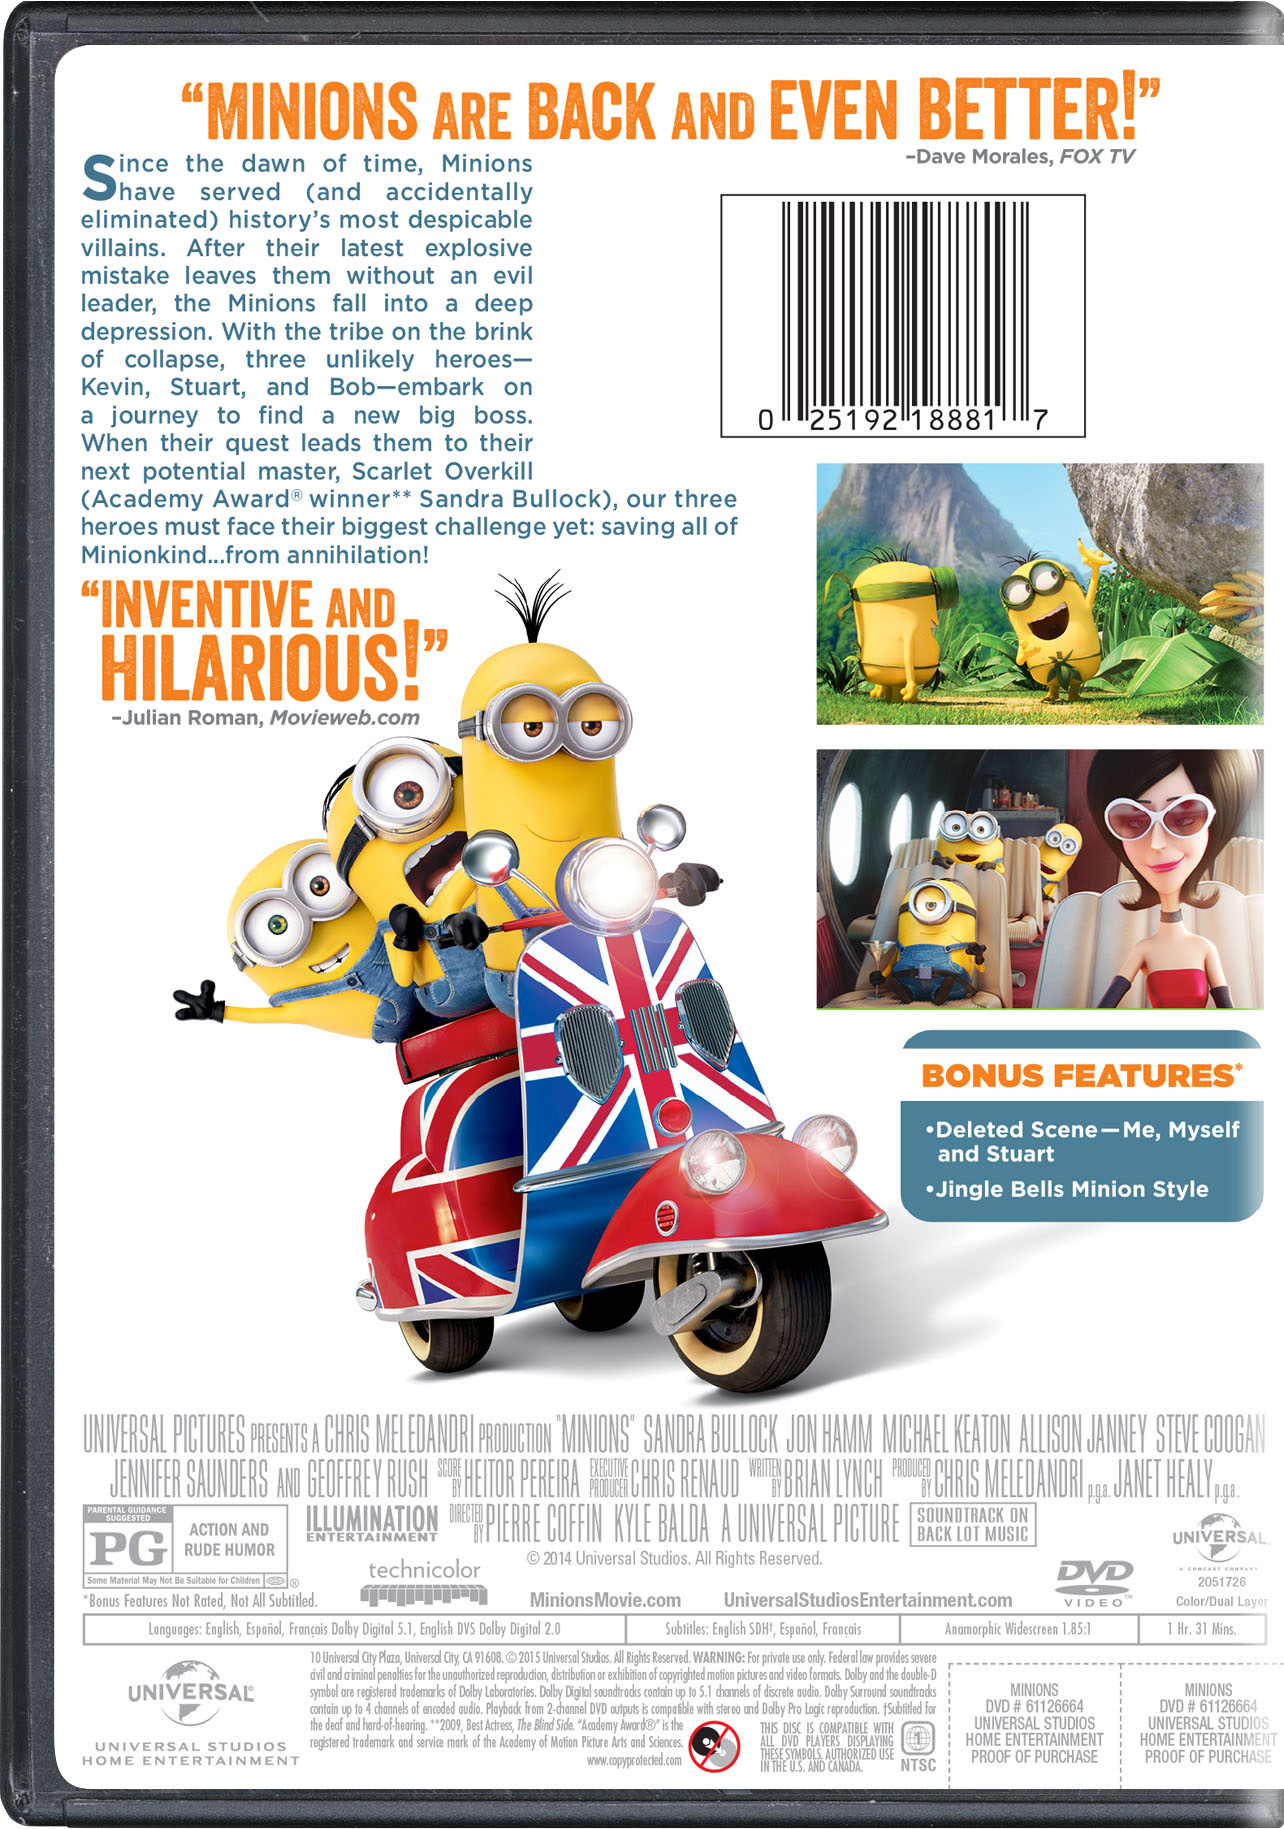 minions movie page dvd bluray digital hd on demand